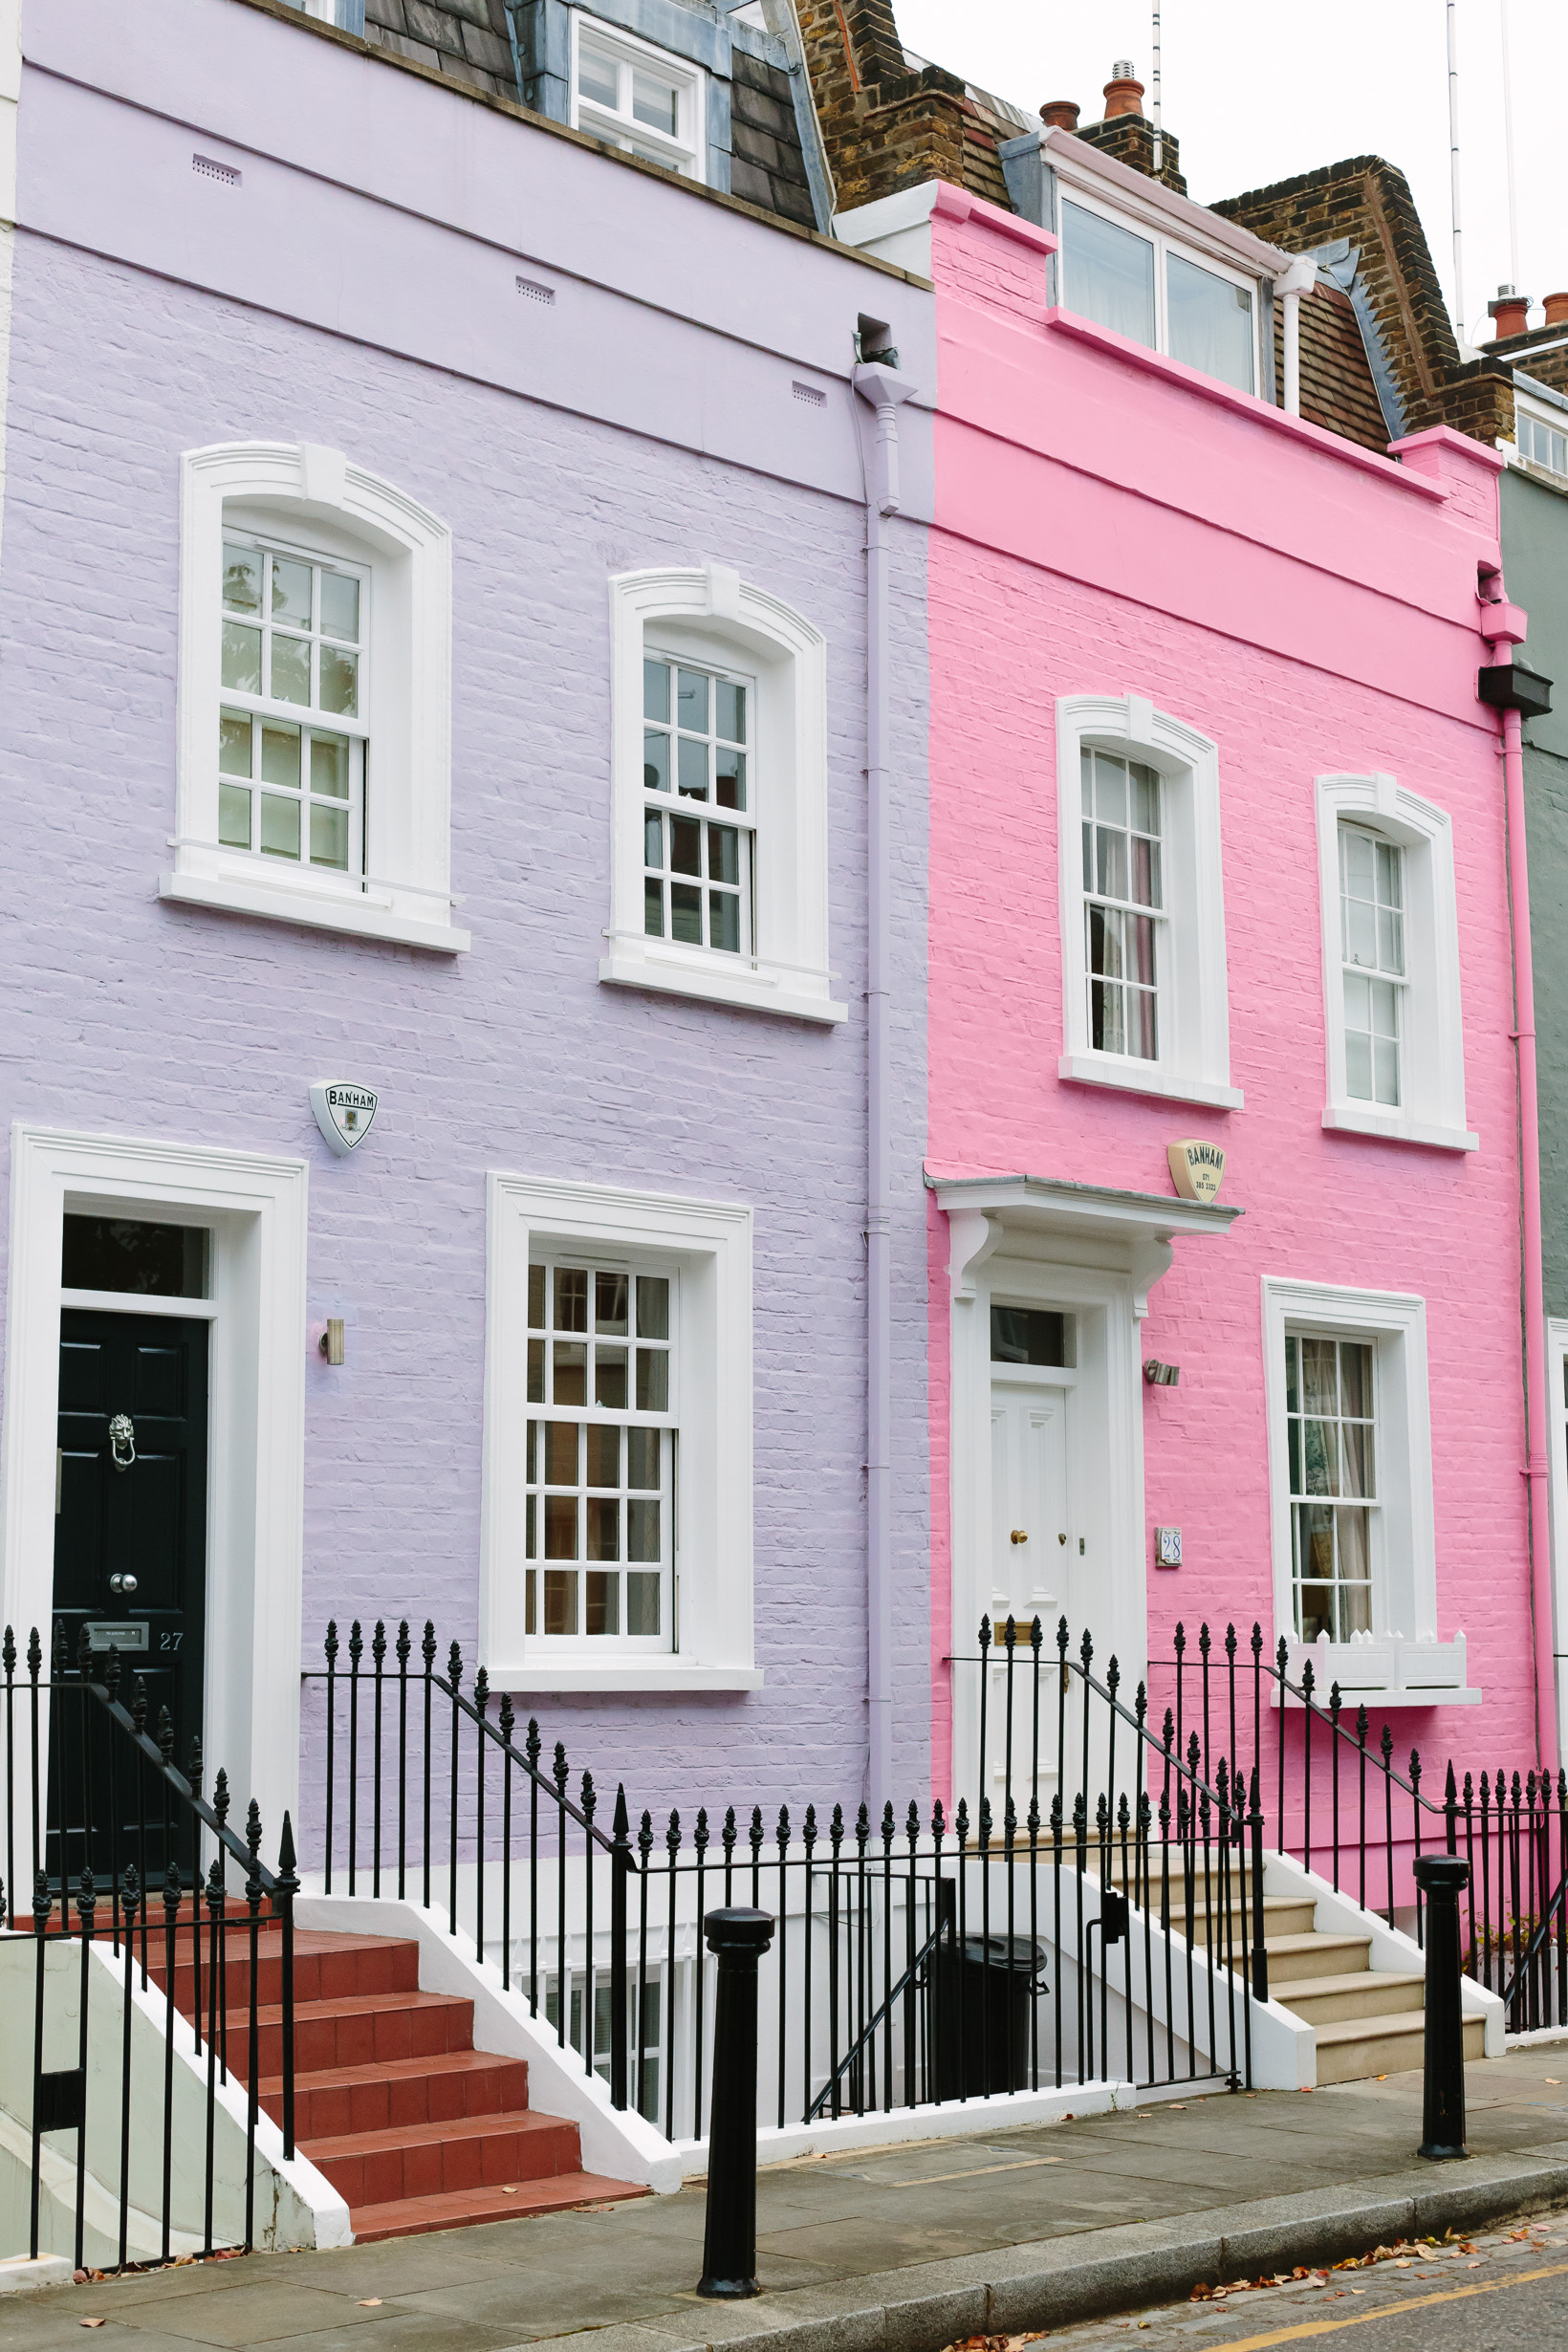 pink-and-purple-colorful-houses-in-london-3907